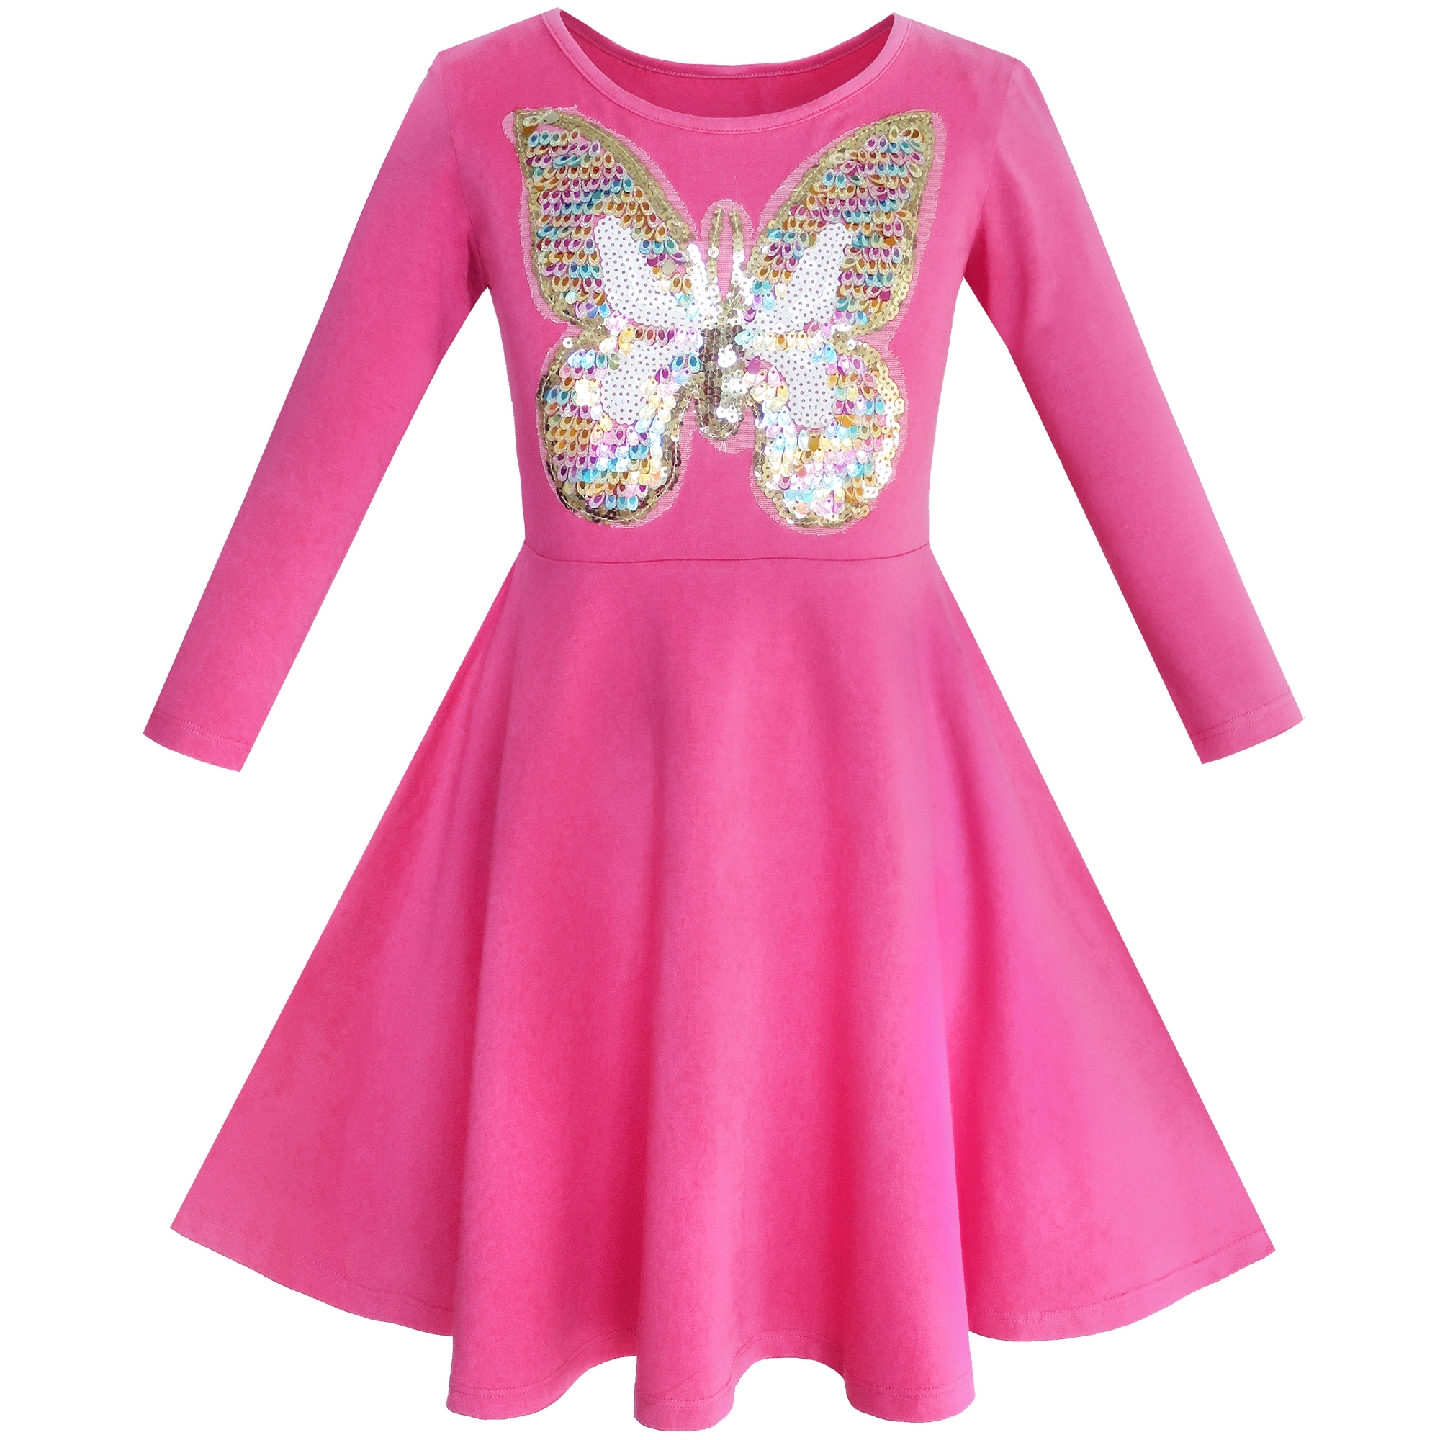 Girls Dress Owl Ice Cream Butterfly Sequin Everyday Dress Cotton 2019  Summer Princess Wedding Party Dresses Girl Clothes Pageant 079152e79872